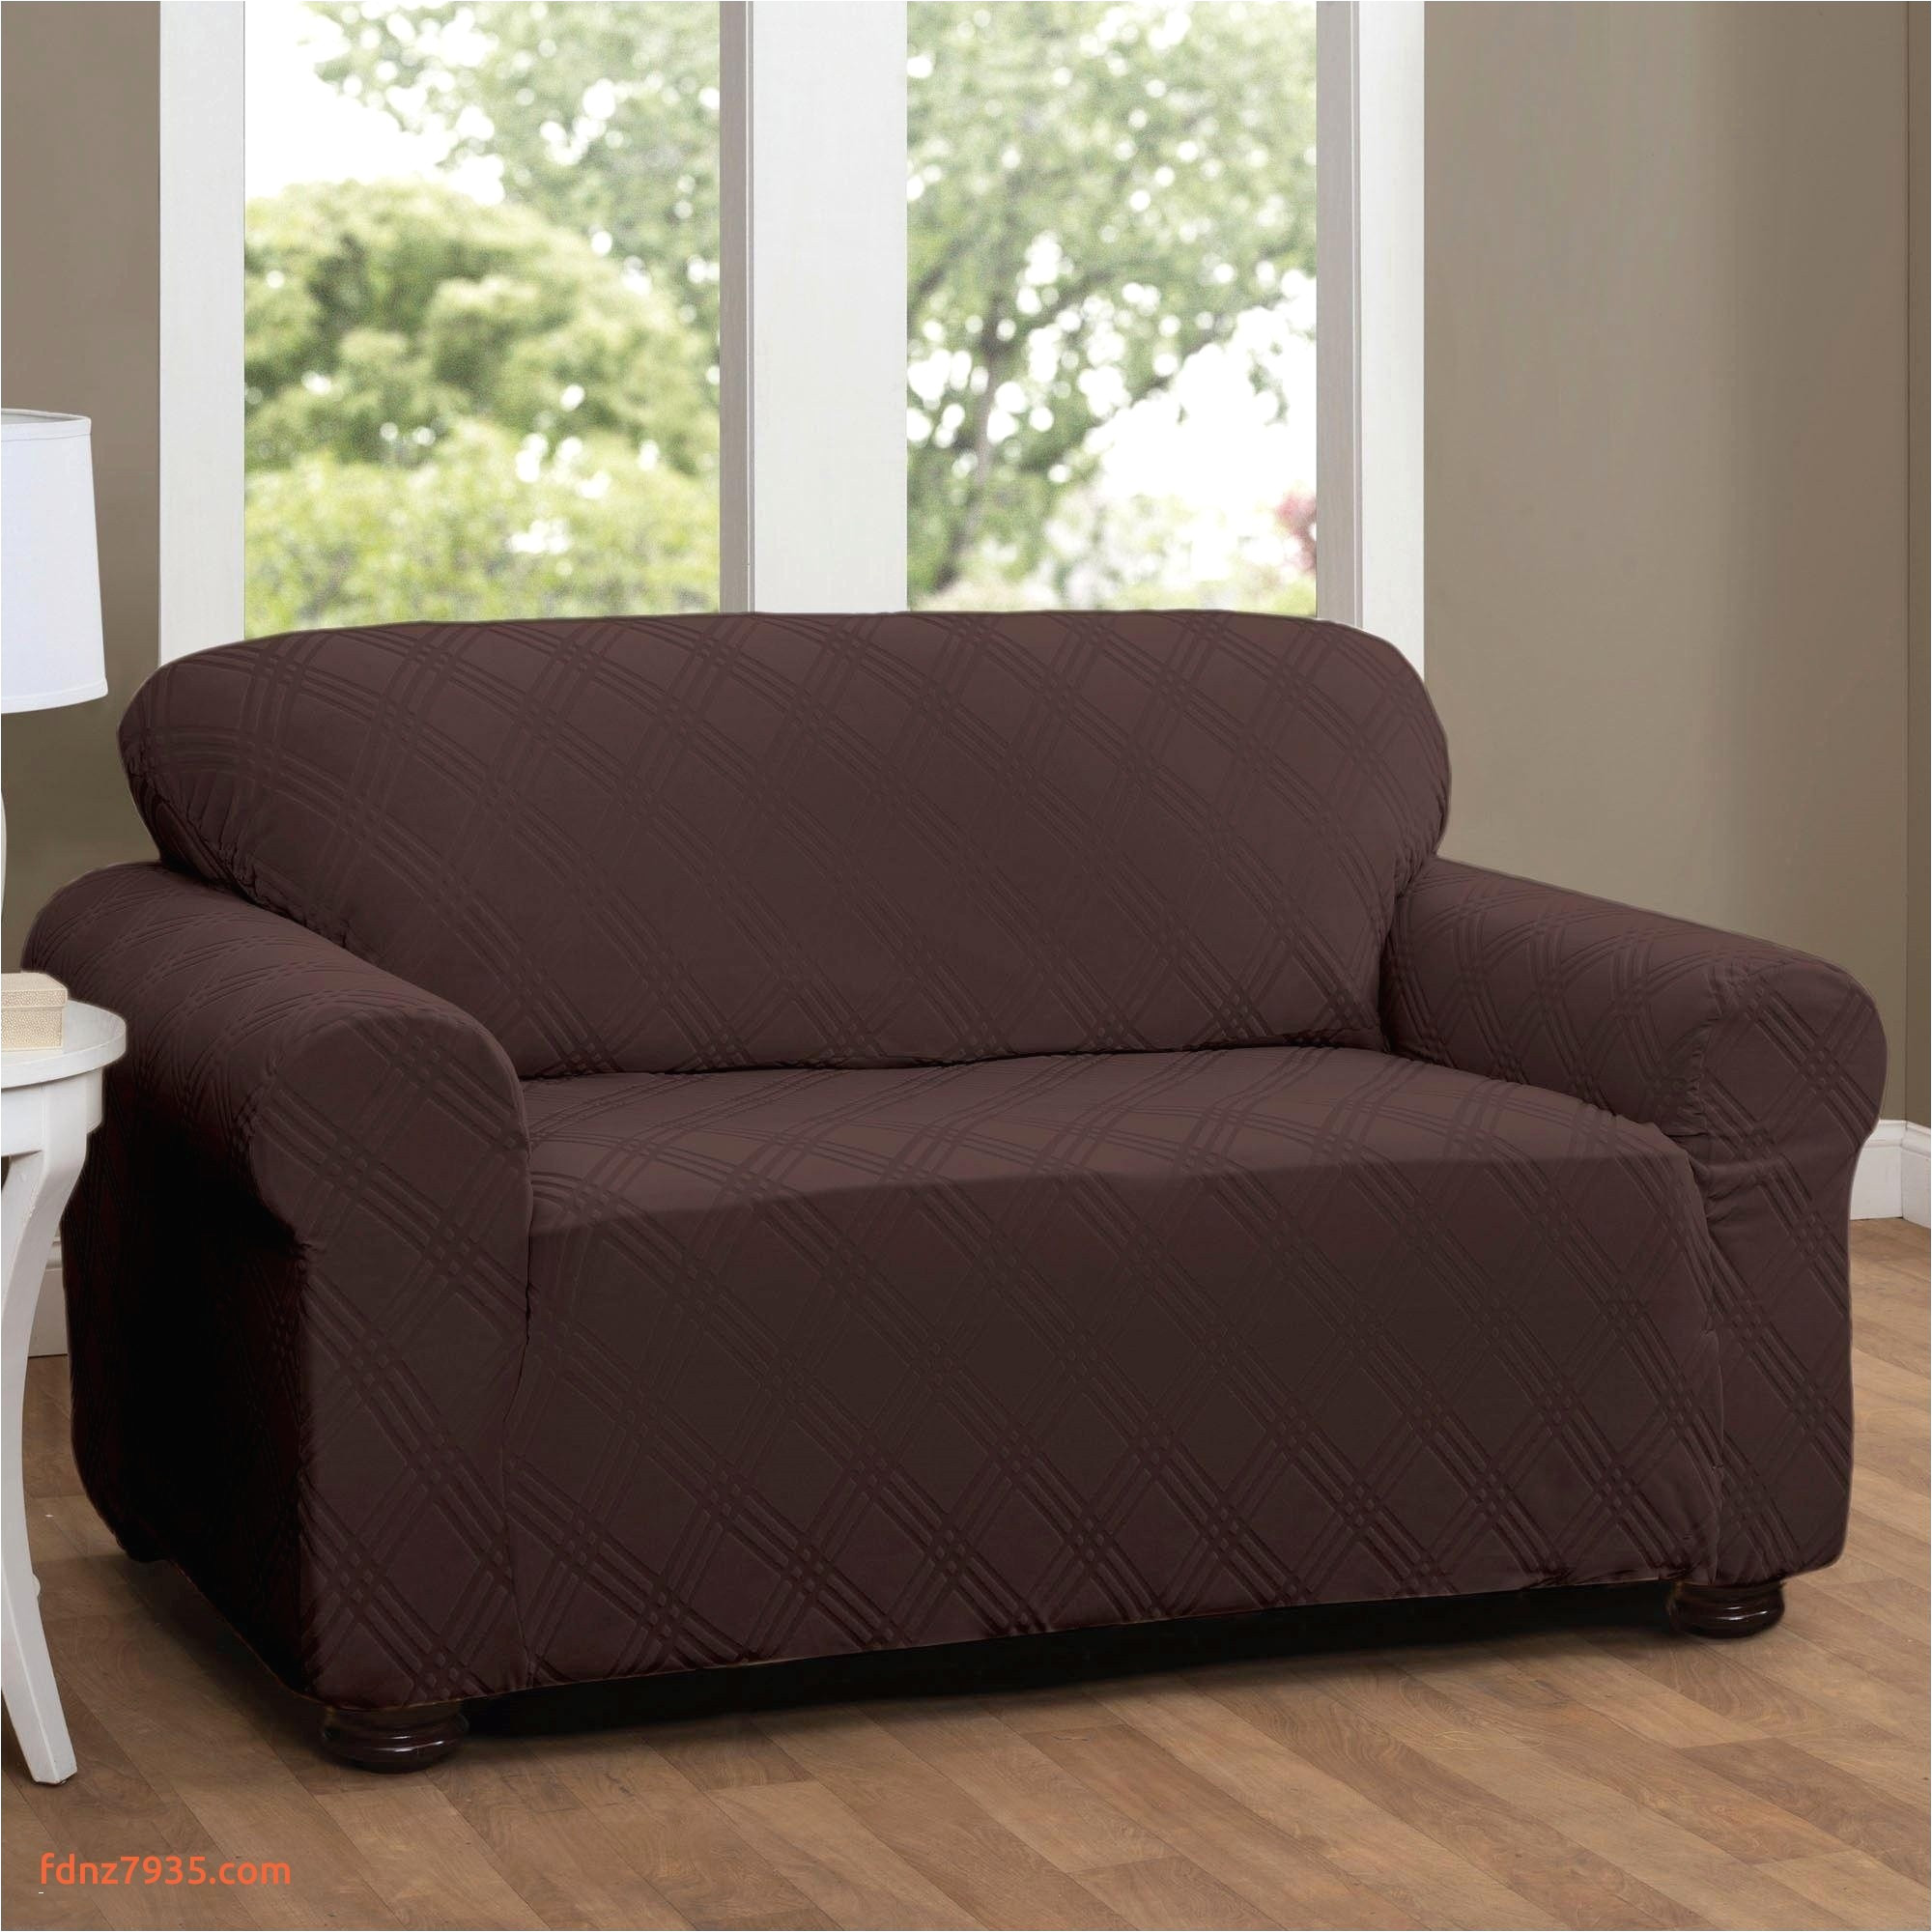 sectional sofas elegance furniture new couch fresh sectional couch 0d tags amazing new